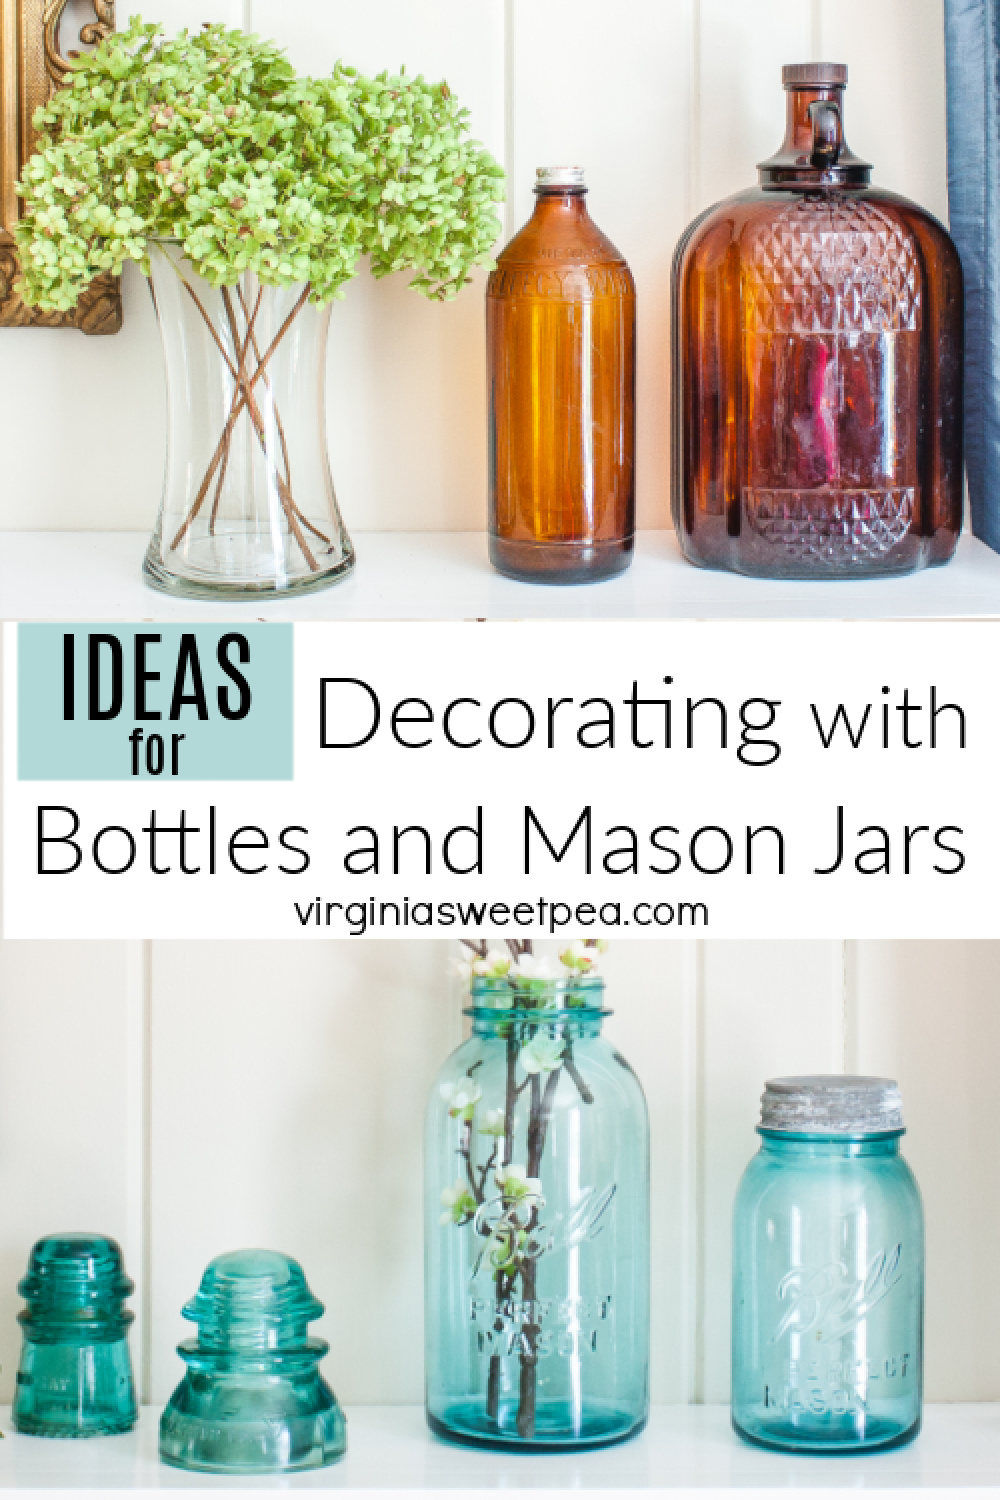 Ideas for Decorating with Vintage Bottles and Mason Jars - Bottles and Mason jars are great to use for home decor.  Get ideas for using these items to create decorative vignettes, to decorate a mantel, and to decorate other areas of your home. Vintage bottles and vintage Mason jars are easily found at flea markets and antique shops.   Why not use them in your home decor? via @spaula